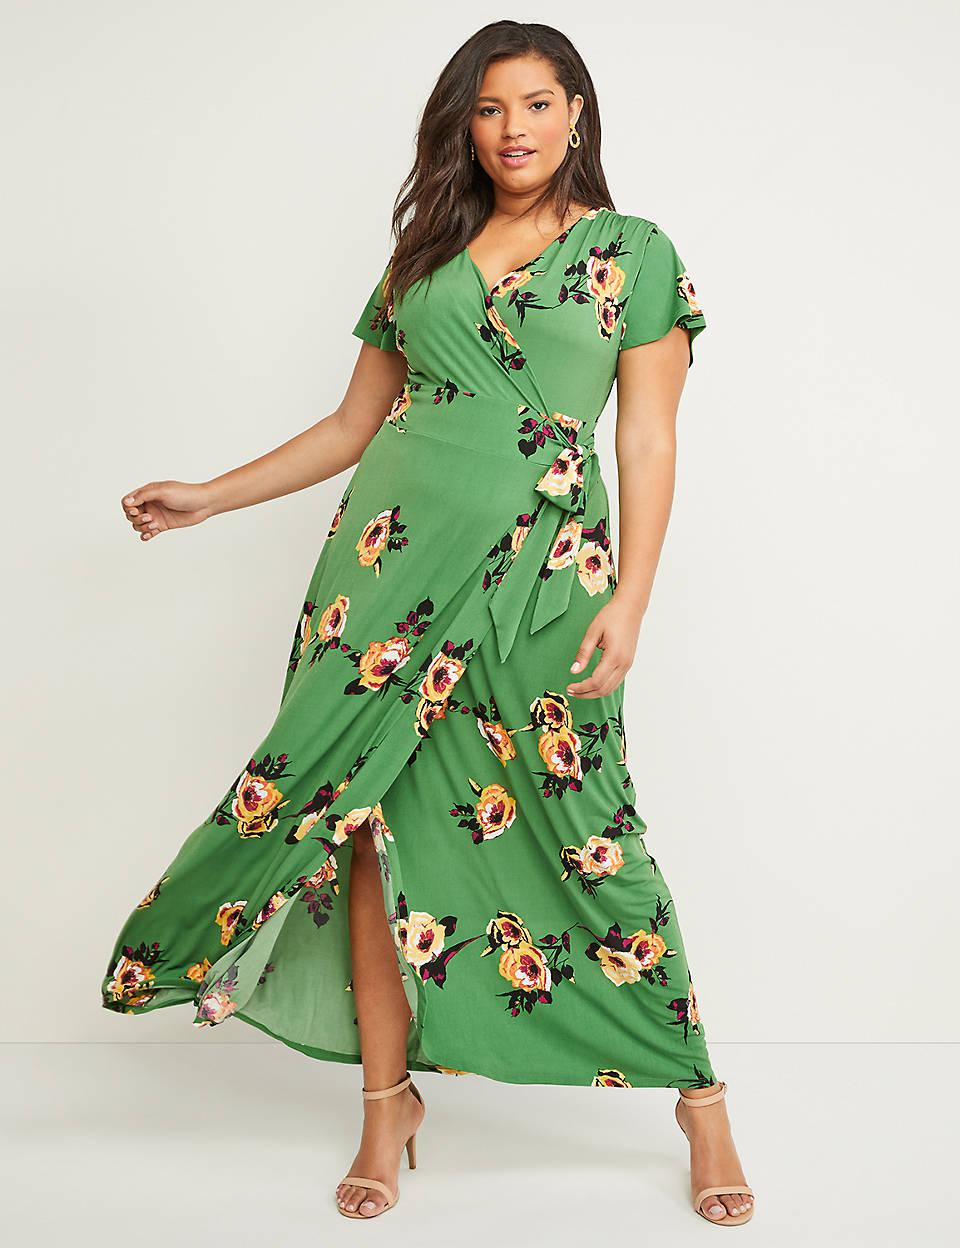 Plus Size Dresses for Work and Play